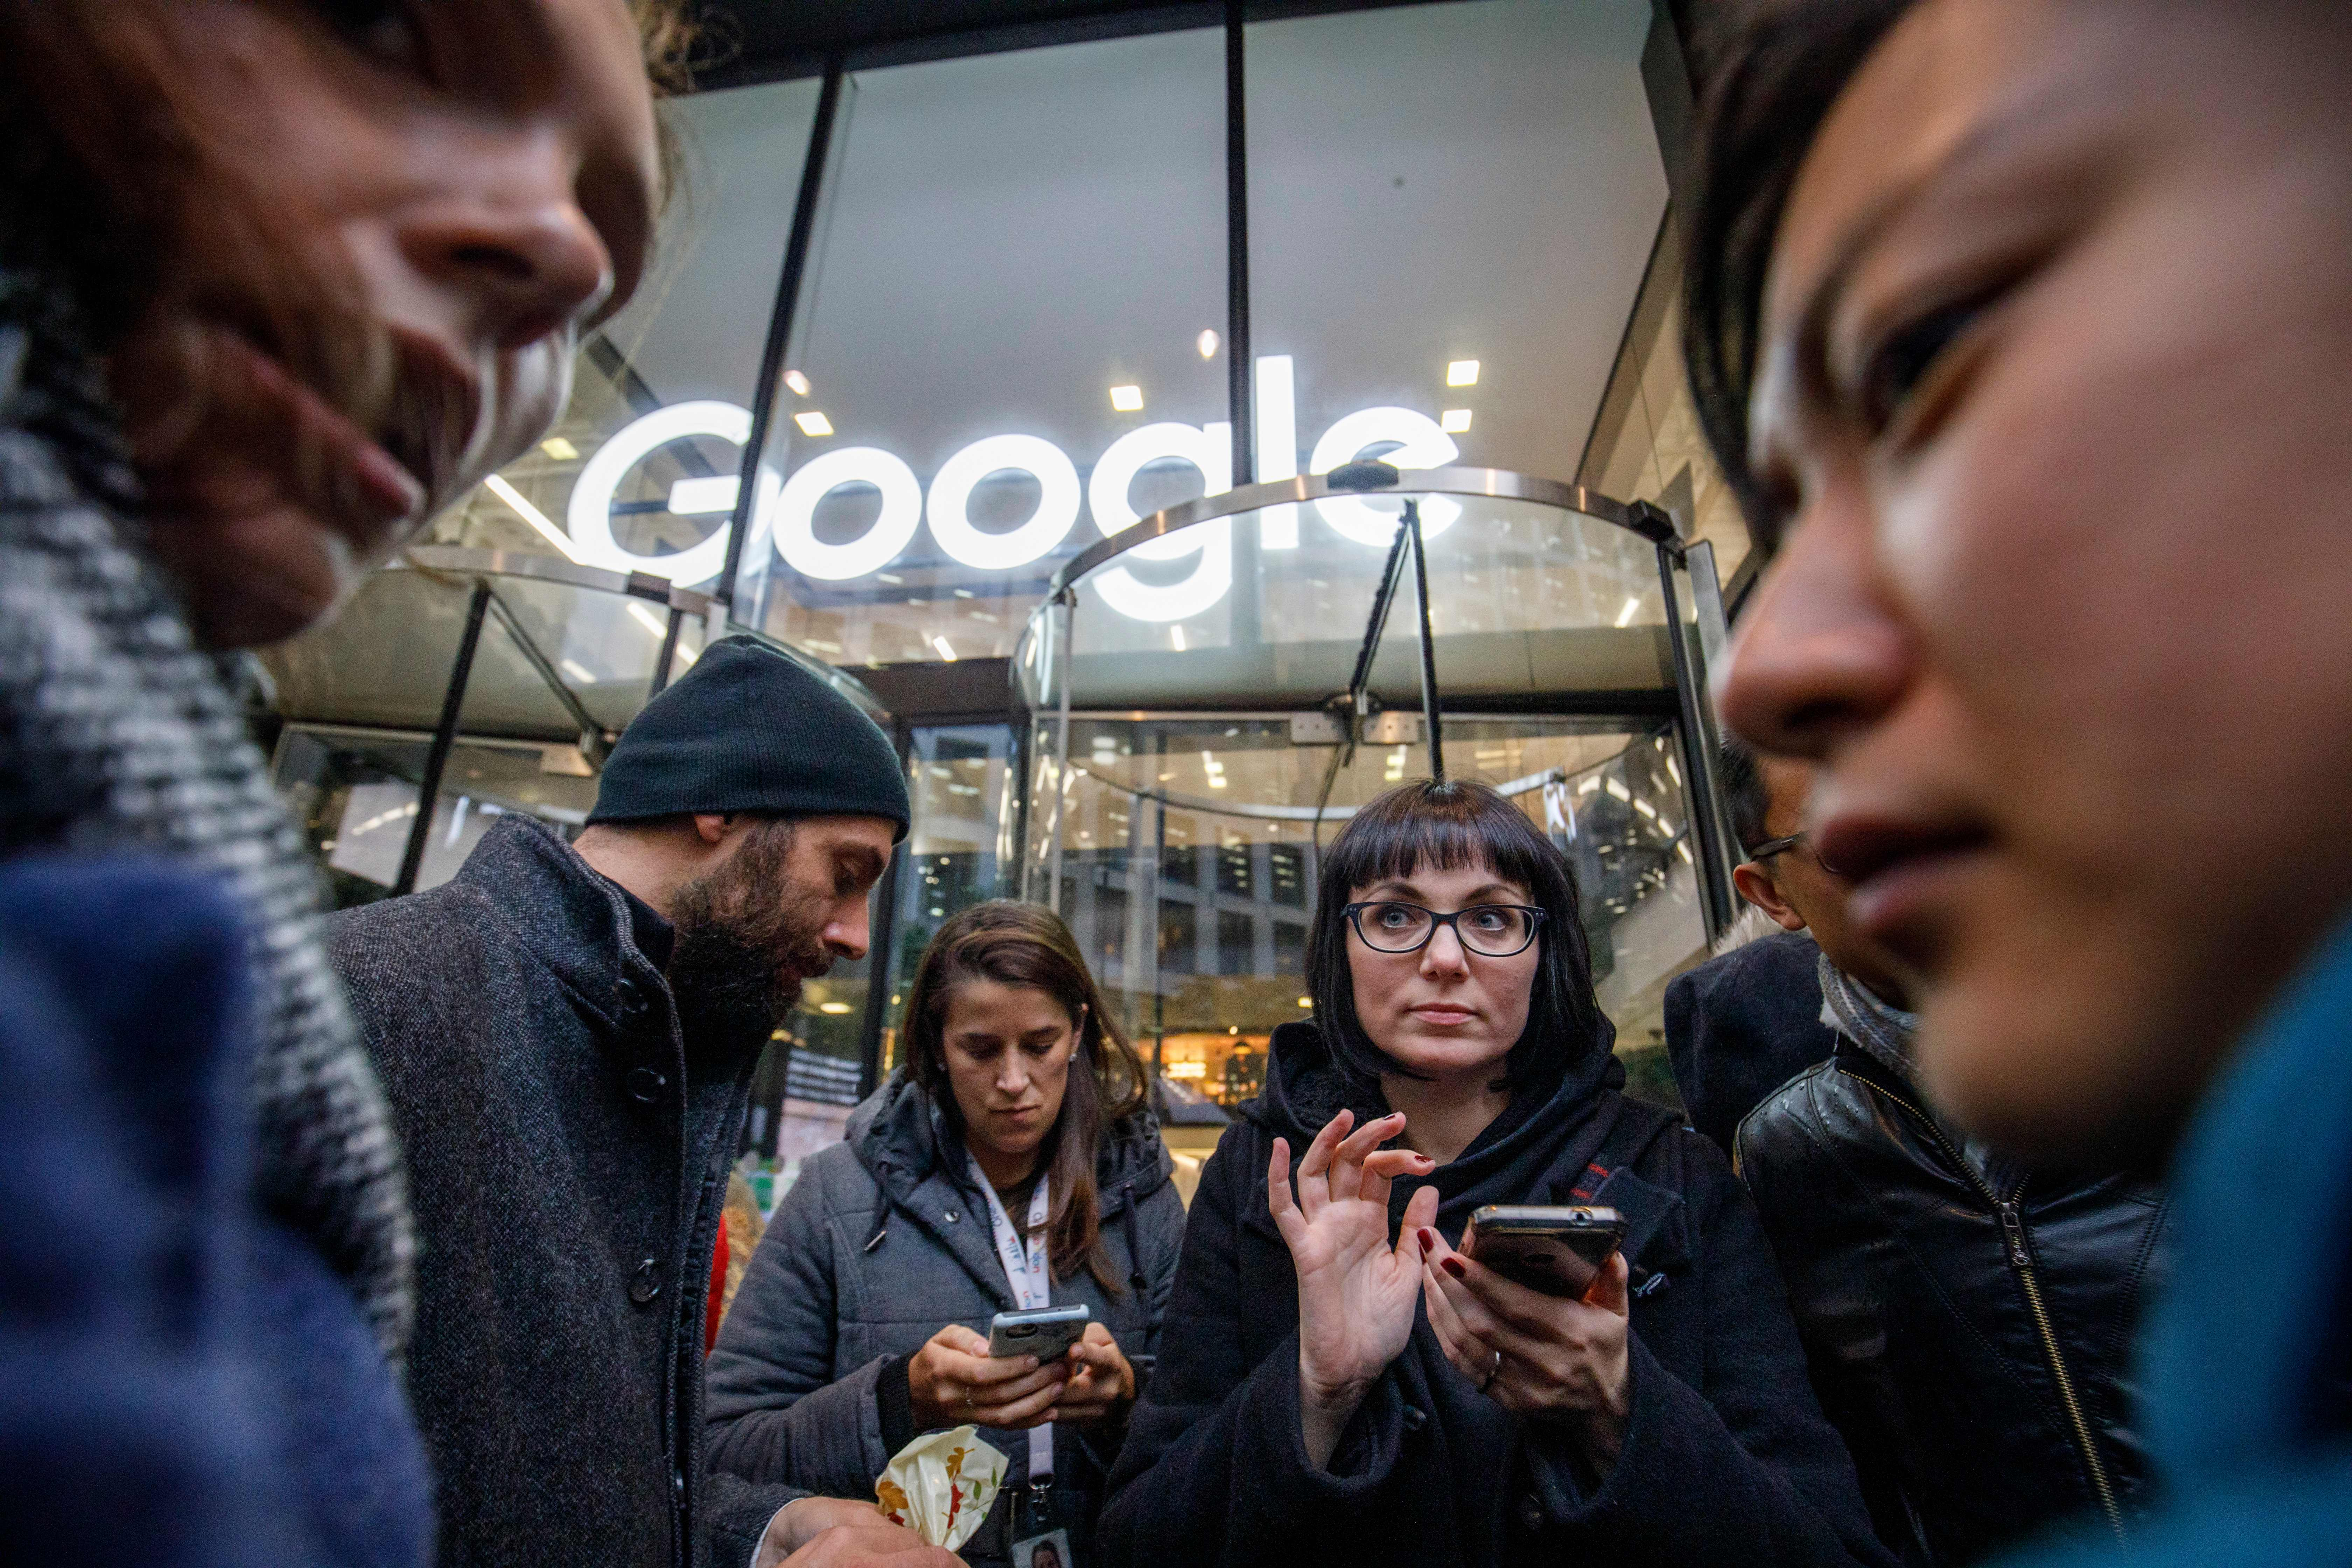 A group of Google employees stands in front of a Google office building in London during a protest.